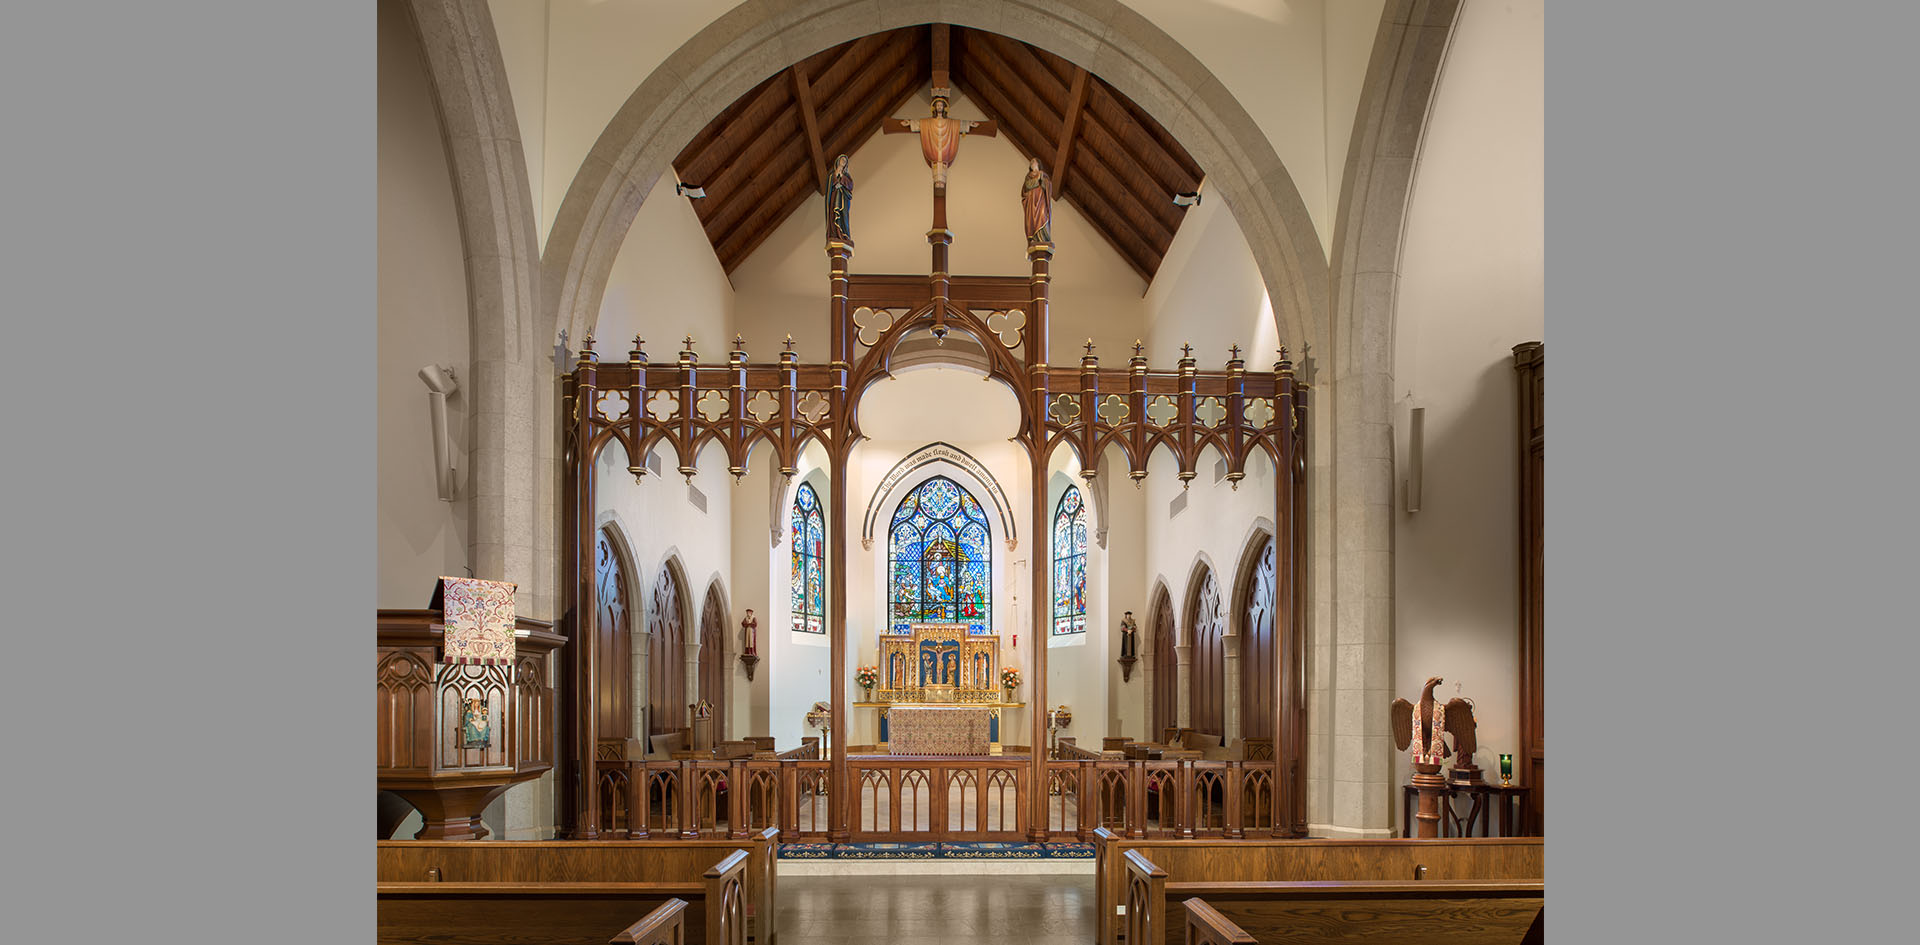 Our Lady of Walsingham Catholic Church Rood Screen 5g